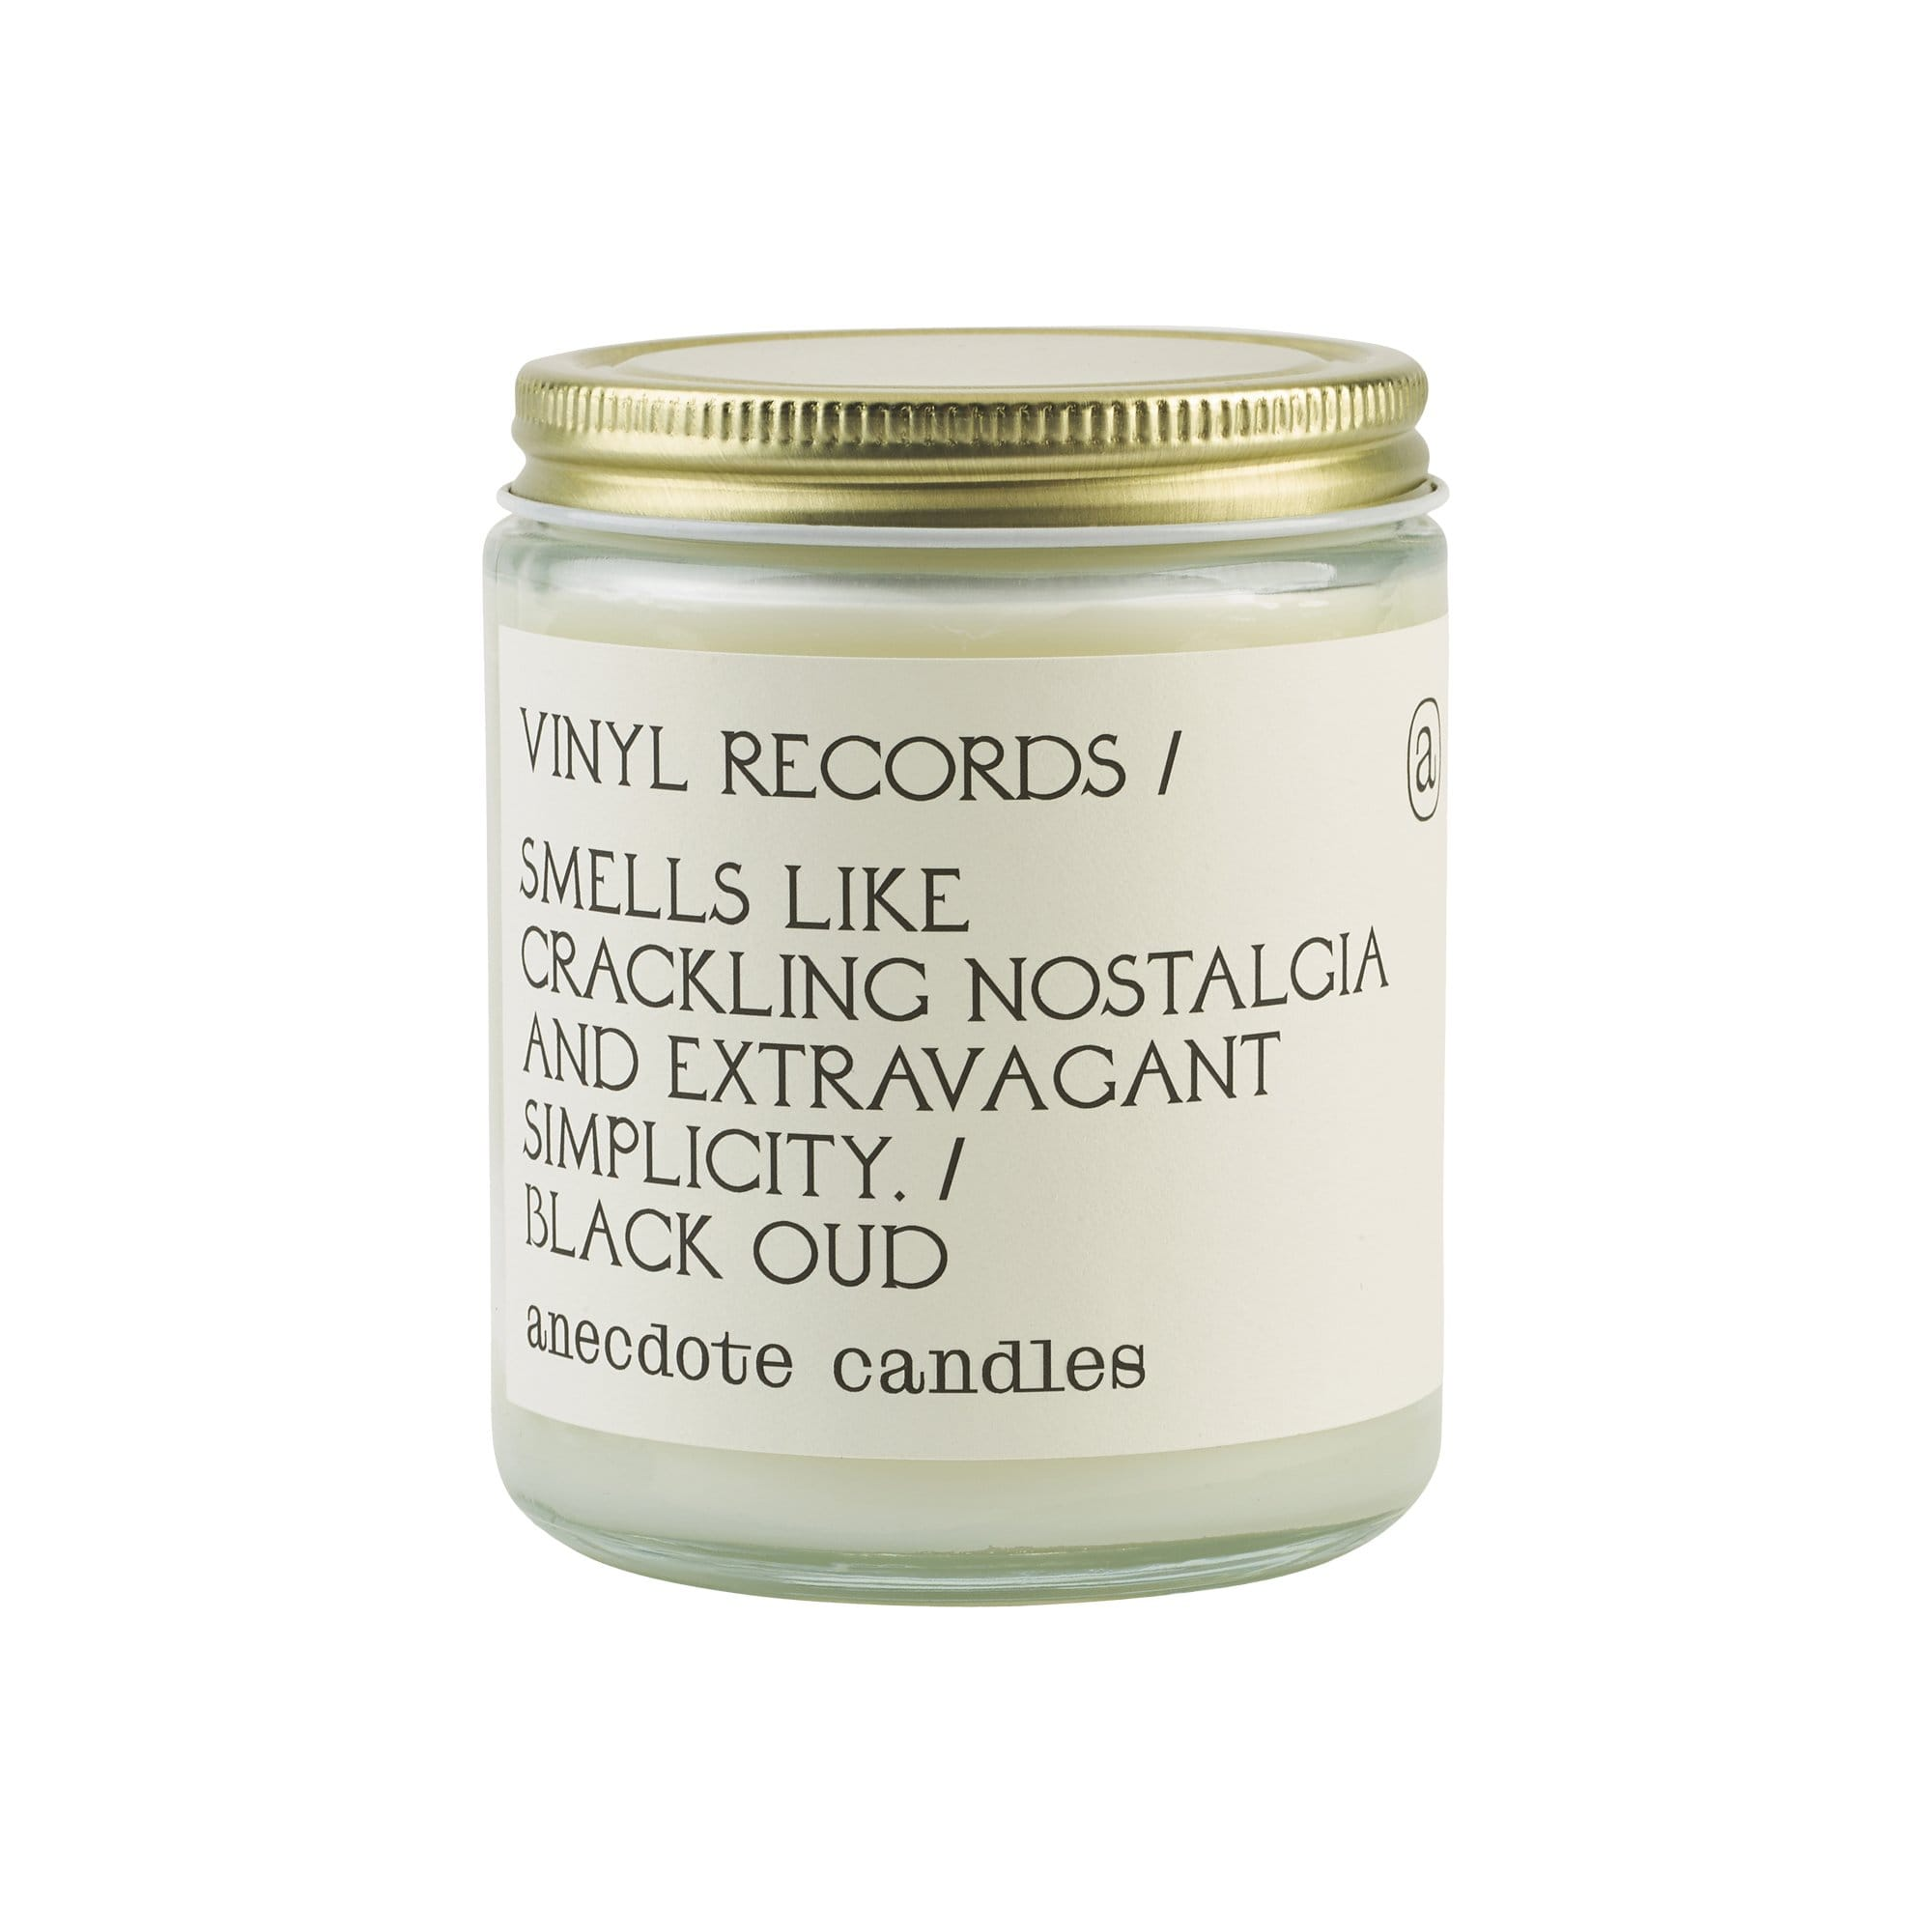 Anecdote Candles Candles, Diffusers + Incense Standard Jar Vinyl Records Black Oud Candle